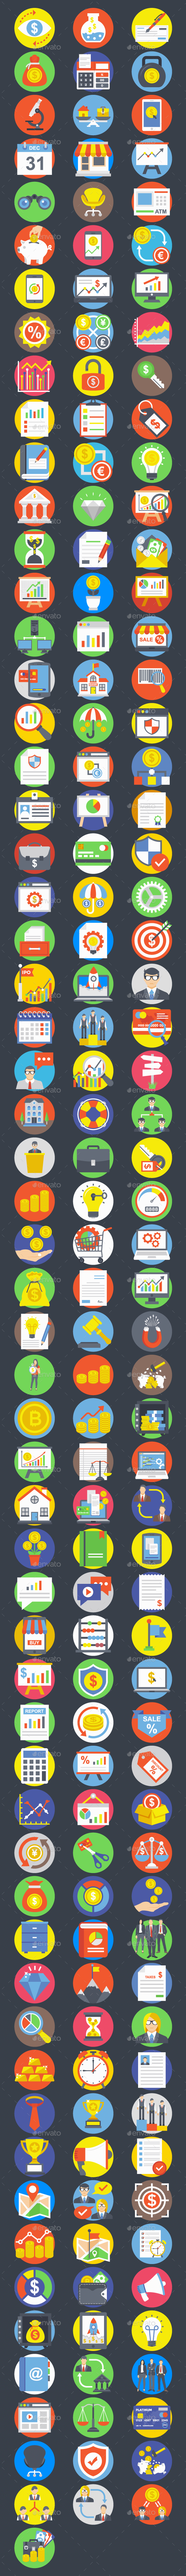 175 Flat Business Icons Set - Icons